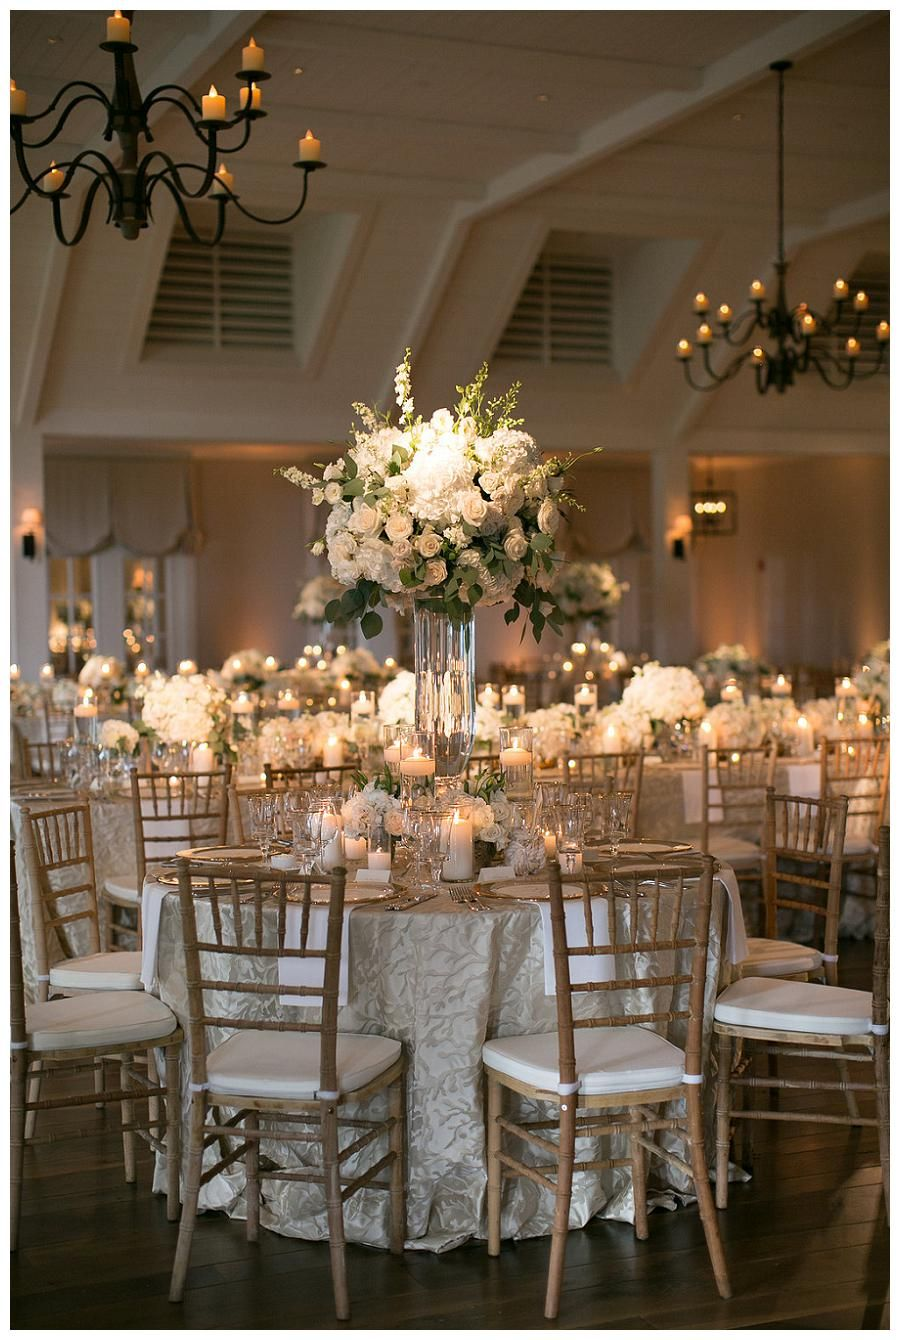 36 white wedding decoration ideas pinterest floating candles gold ivory and white wedding reception decor with white florals in glass vessels place settings of gold rimmed crystal and gold rimmed glass chargers junglespirit Choice Image